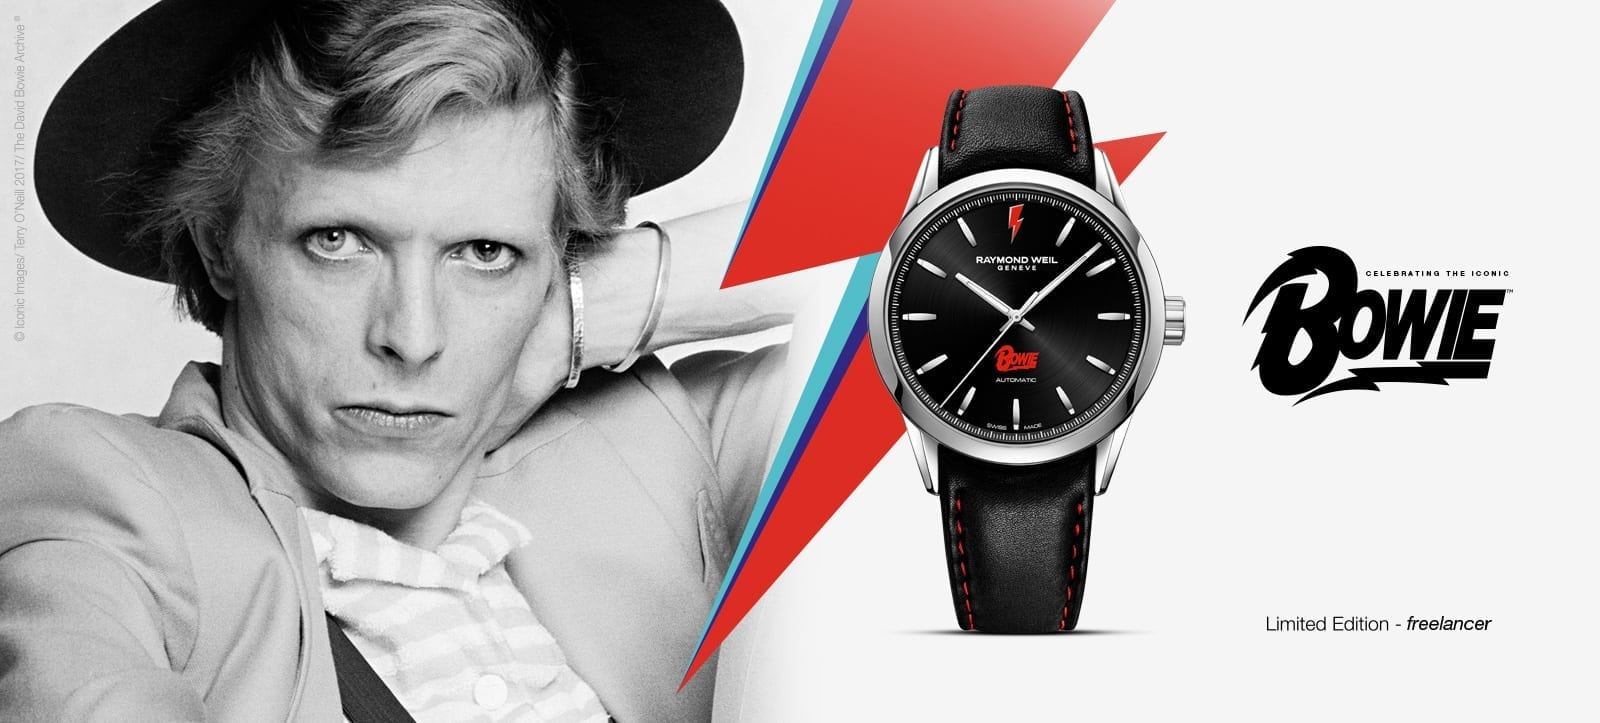 David Bowie Limited Edition Freelancer RAYMOND WEIL